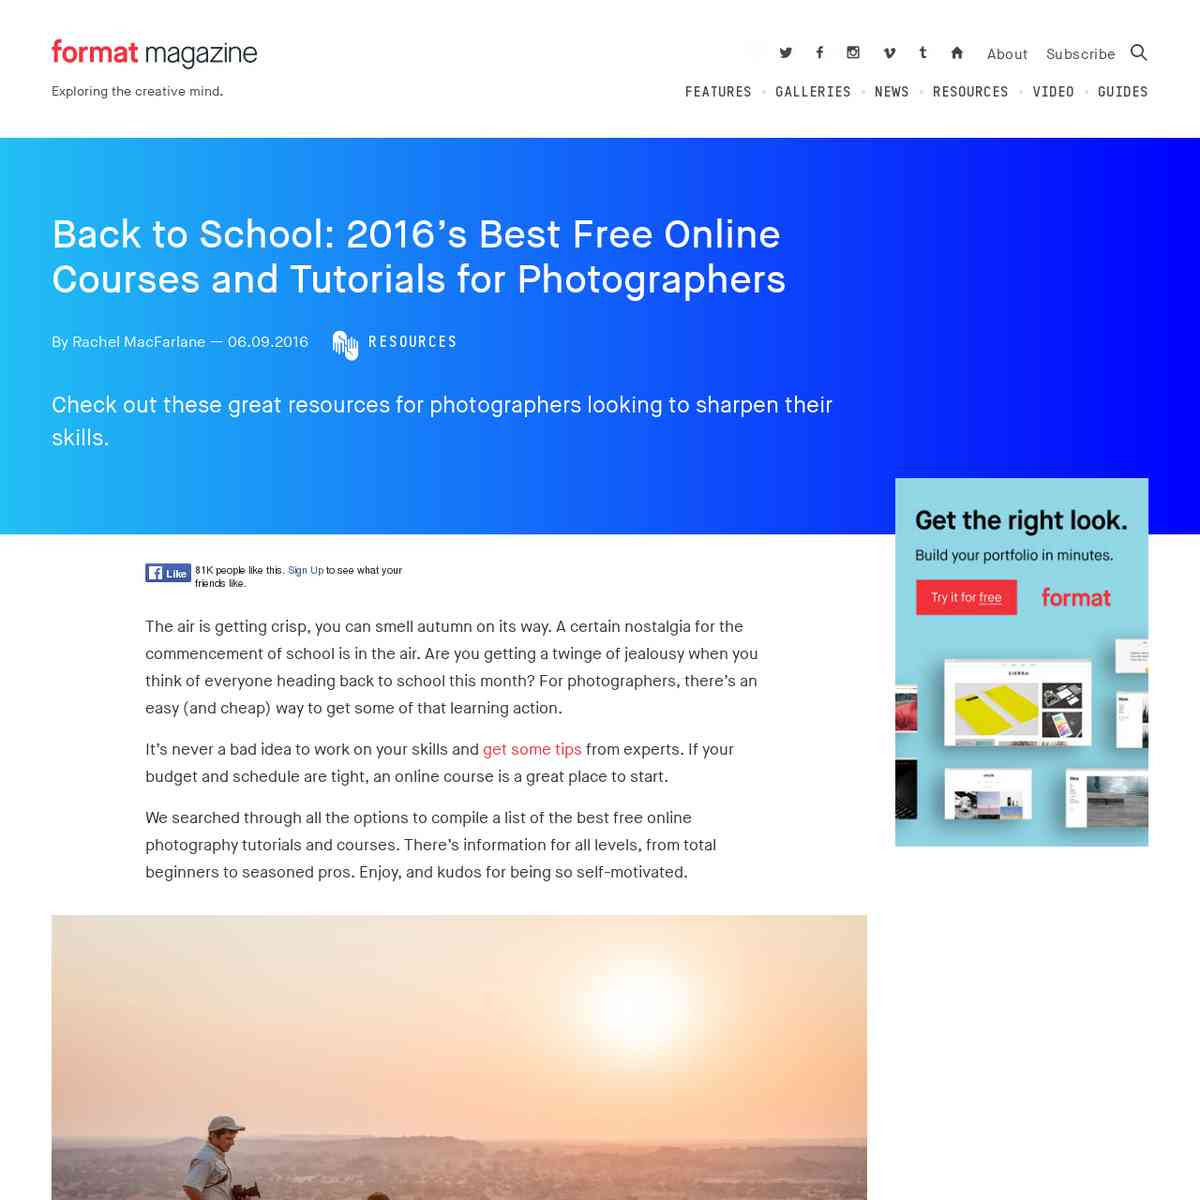 Back to School: 2016's Best Free Online Courses and Tutorials for Photographers